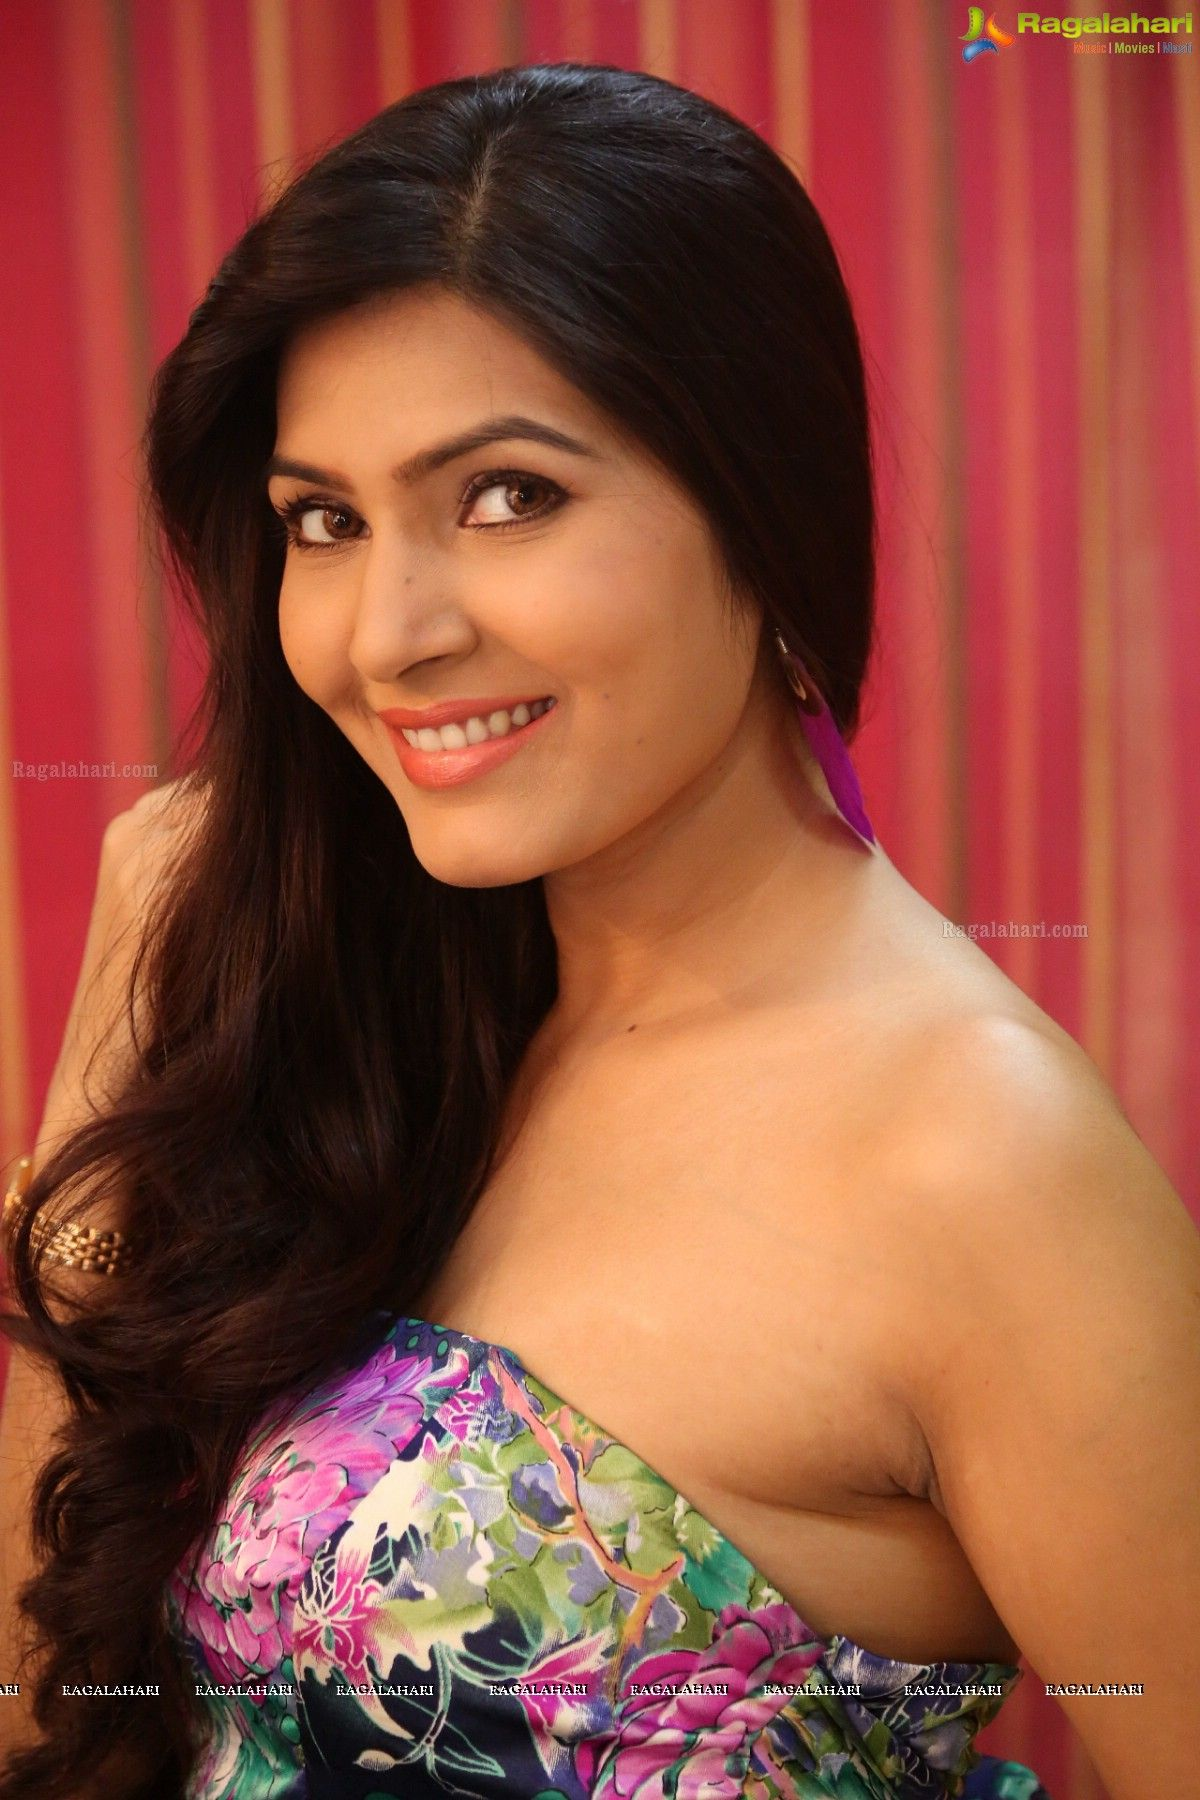 hot sangeetha images mouth